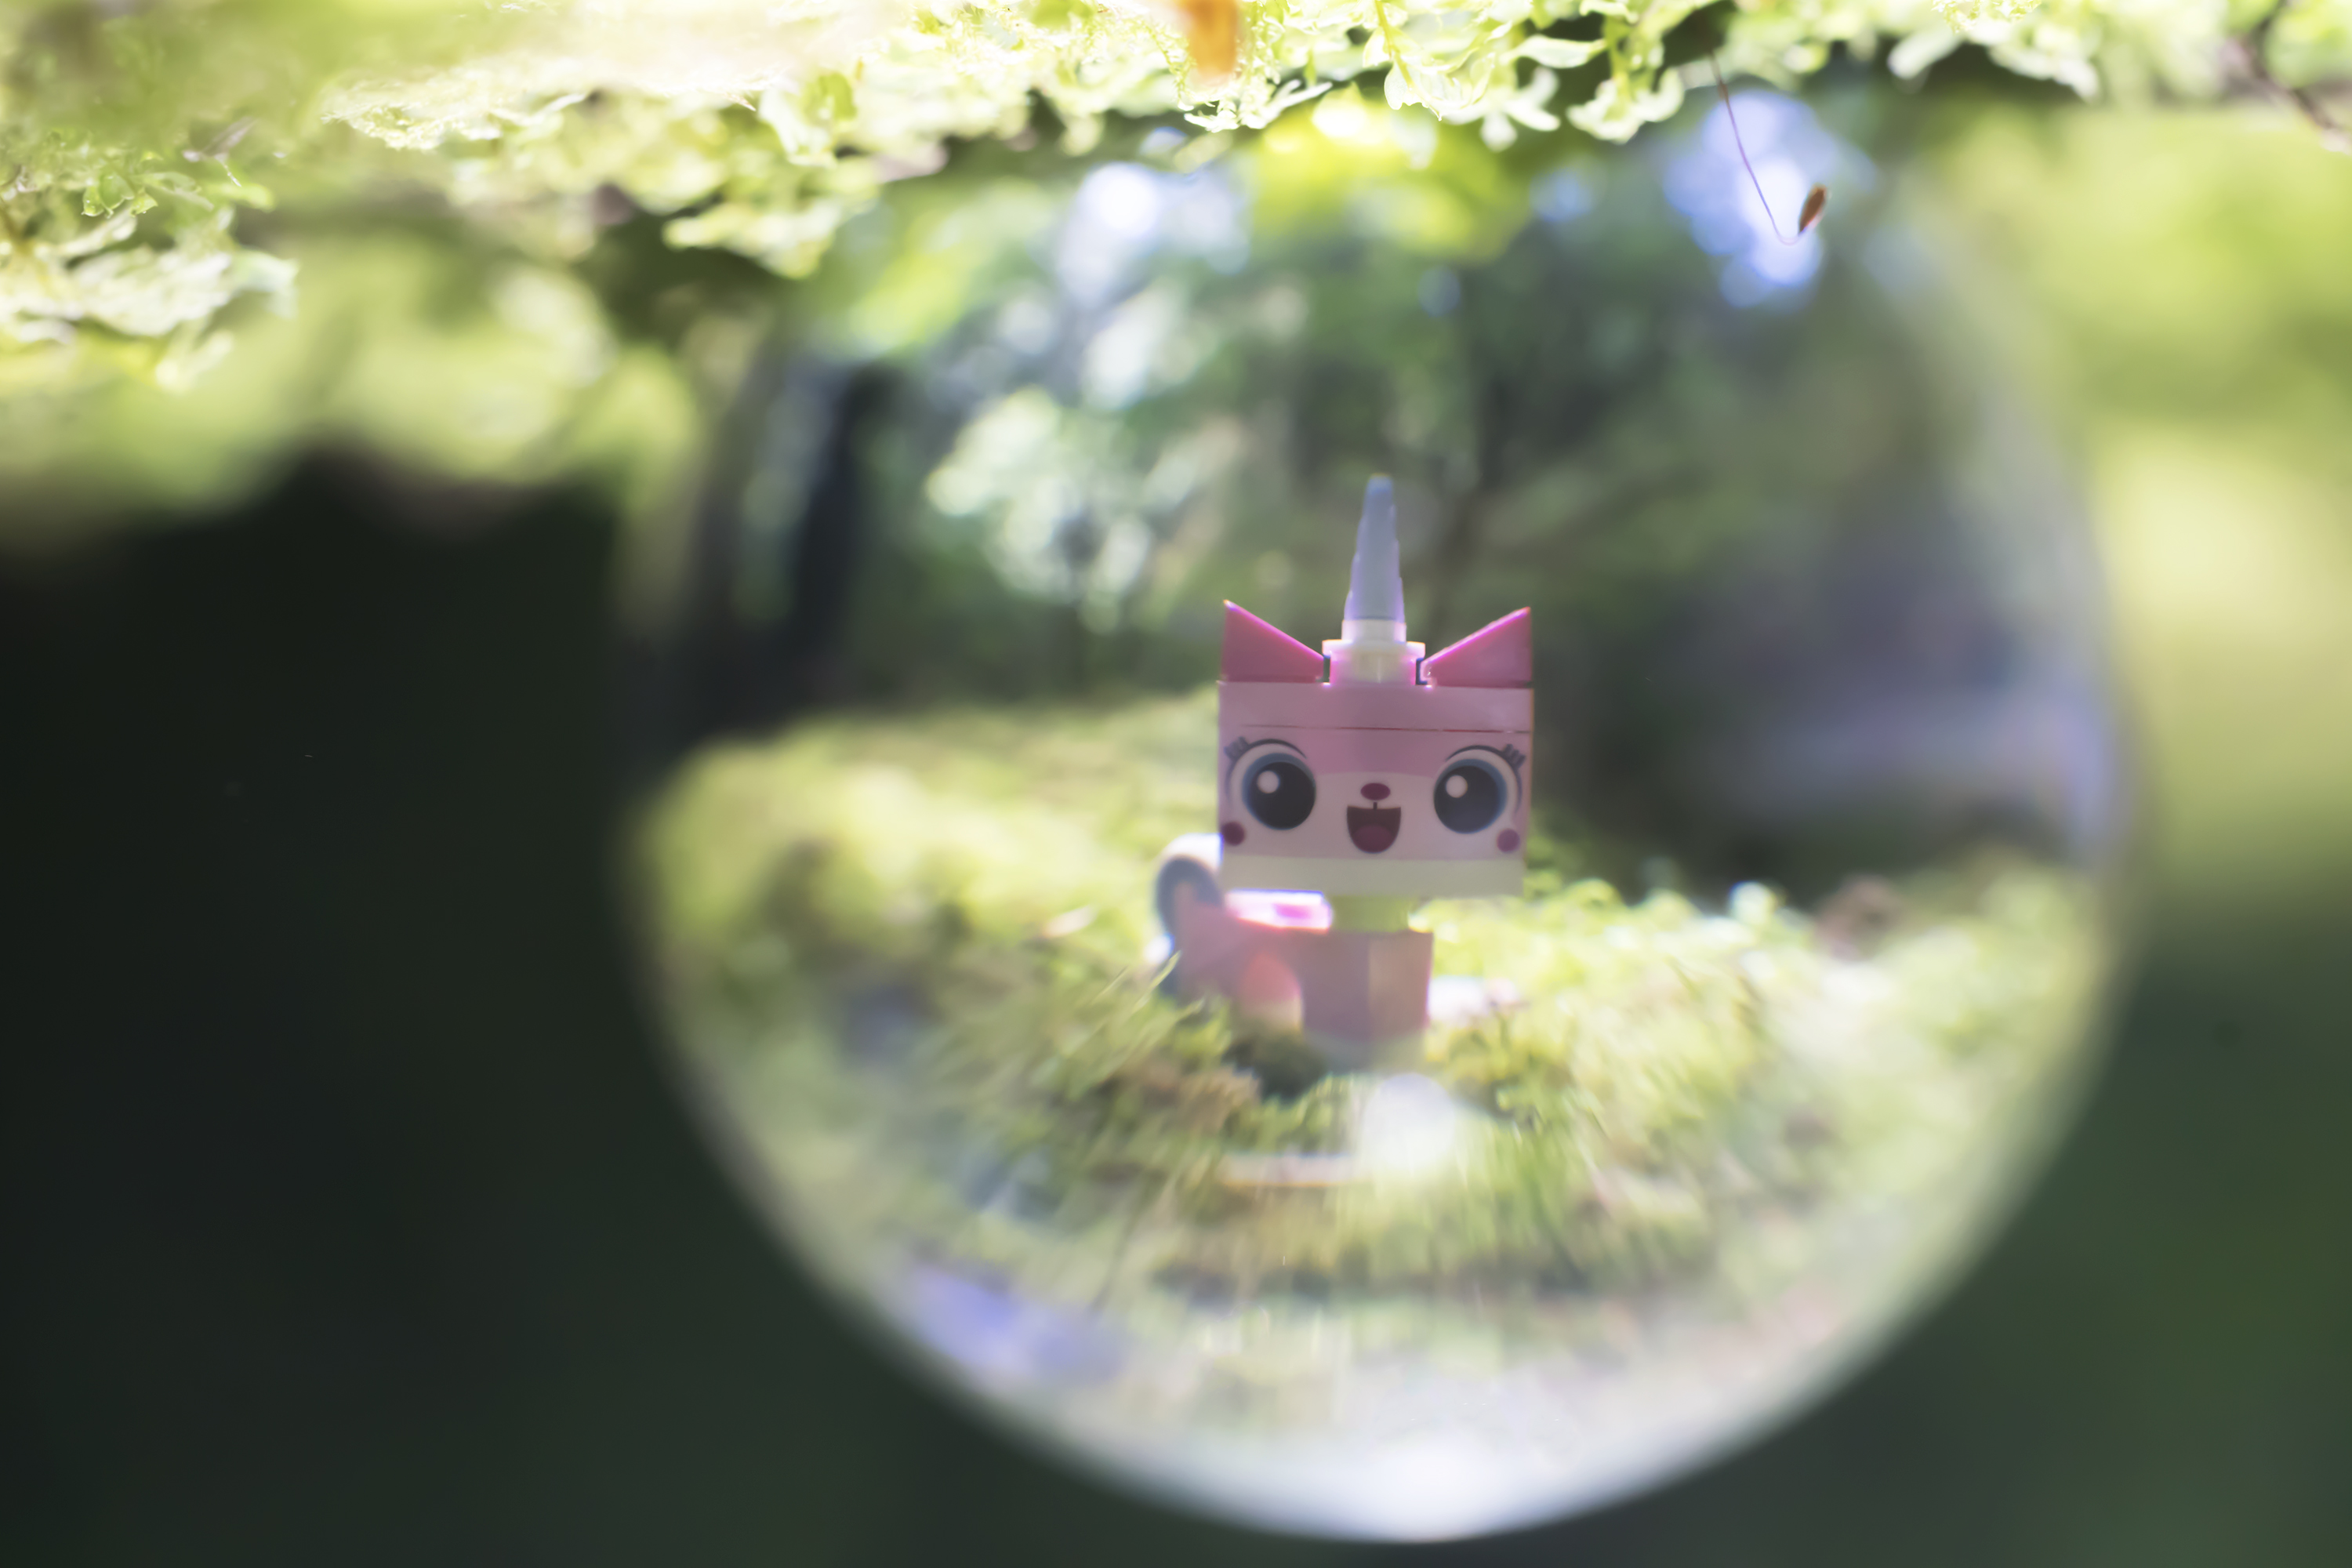 lego-unikitty-legography-lensball